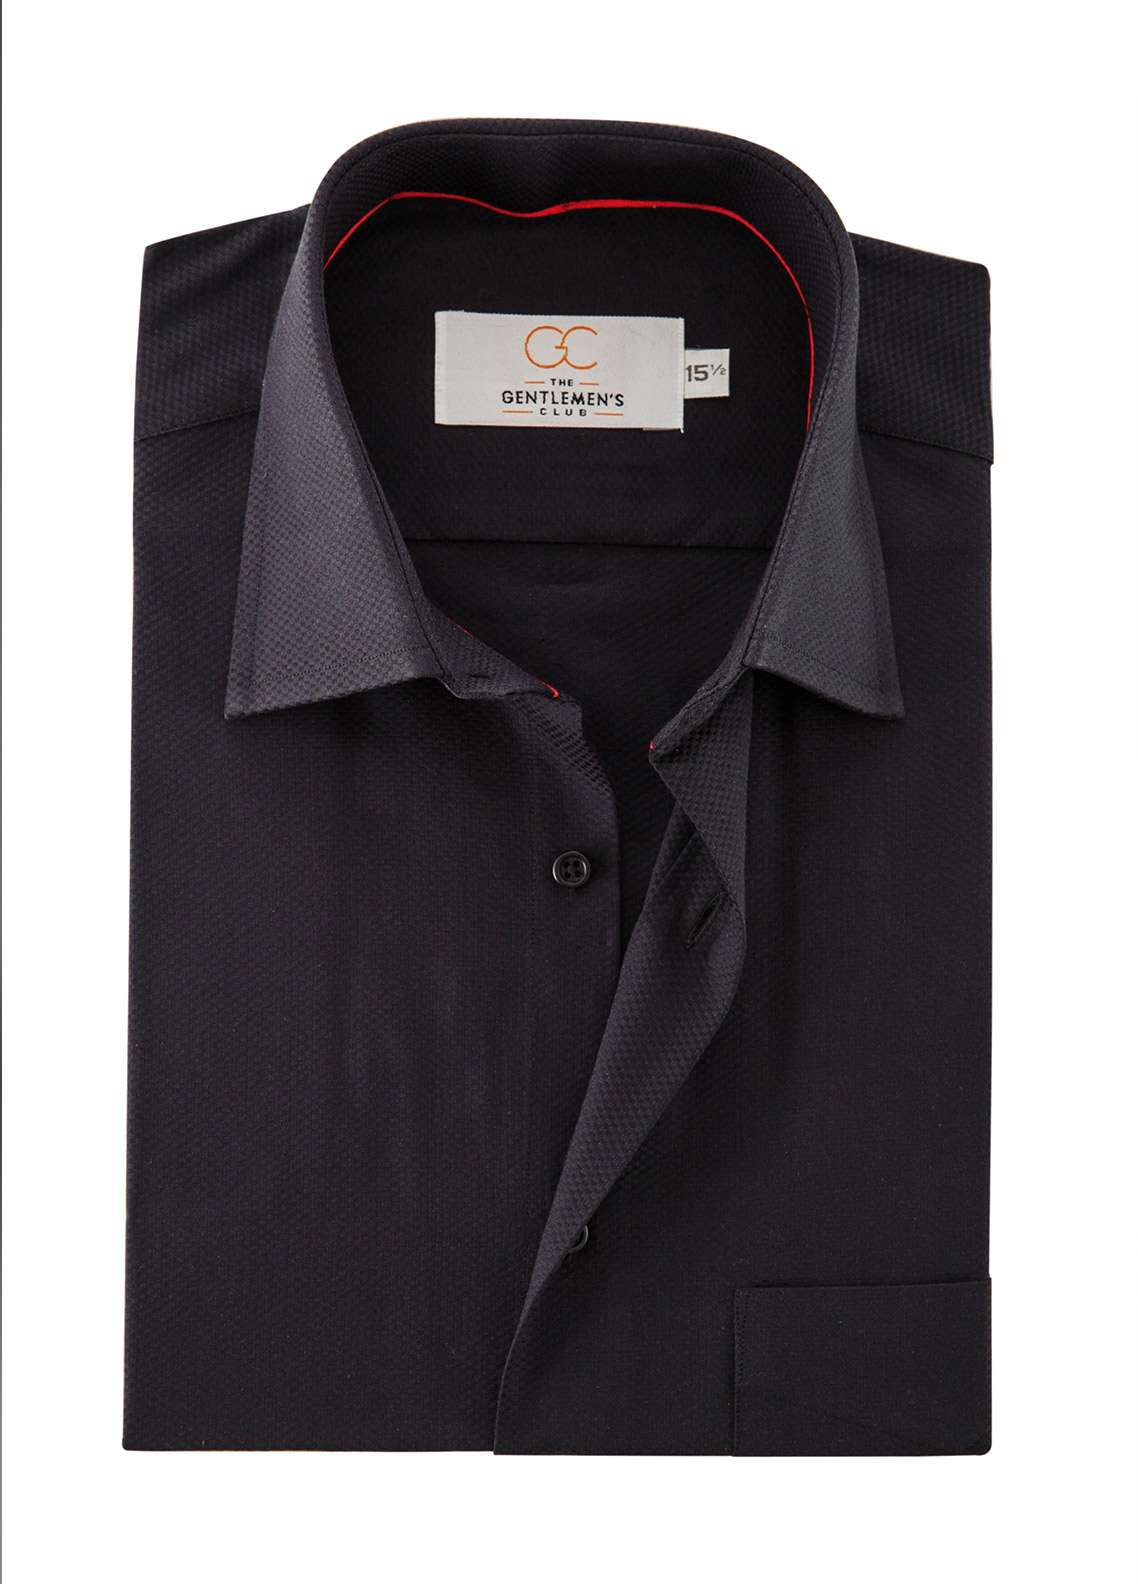 The Gentlemen's Club Cotton White Label Men Formal Shirts - Black GM18FS 4010